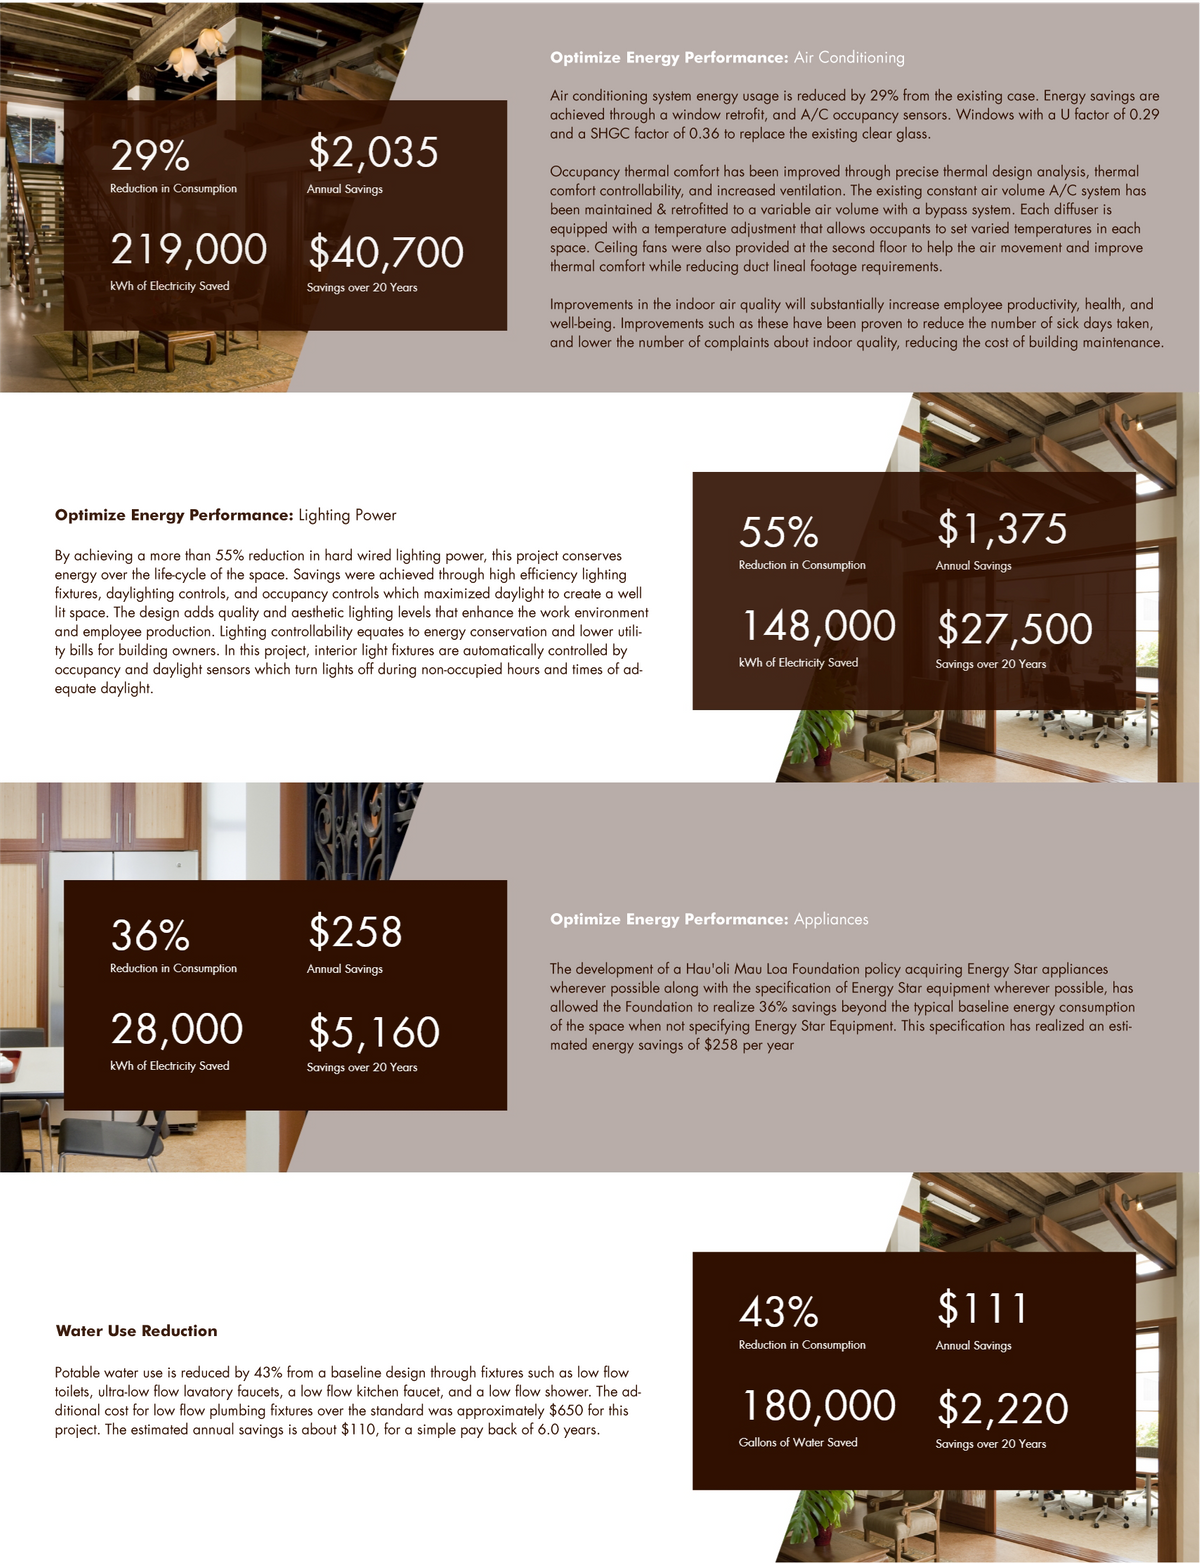 HMMLF_casestudy_image.png